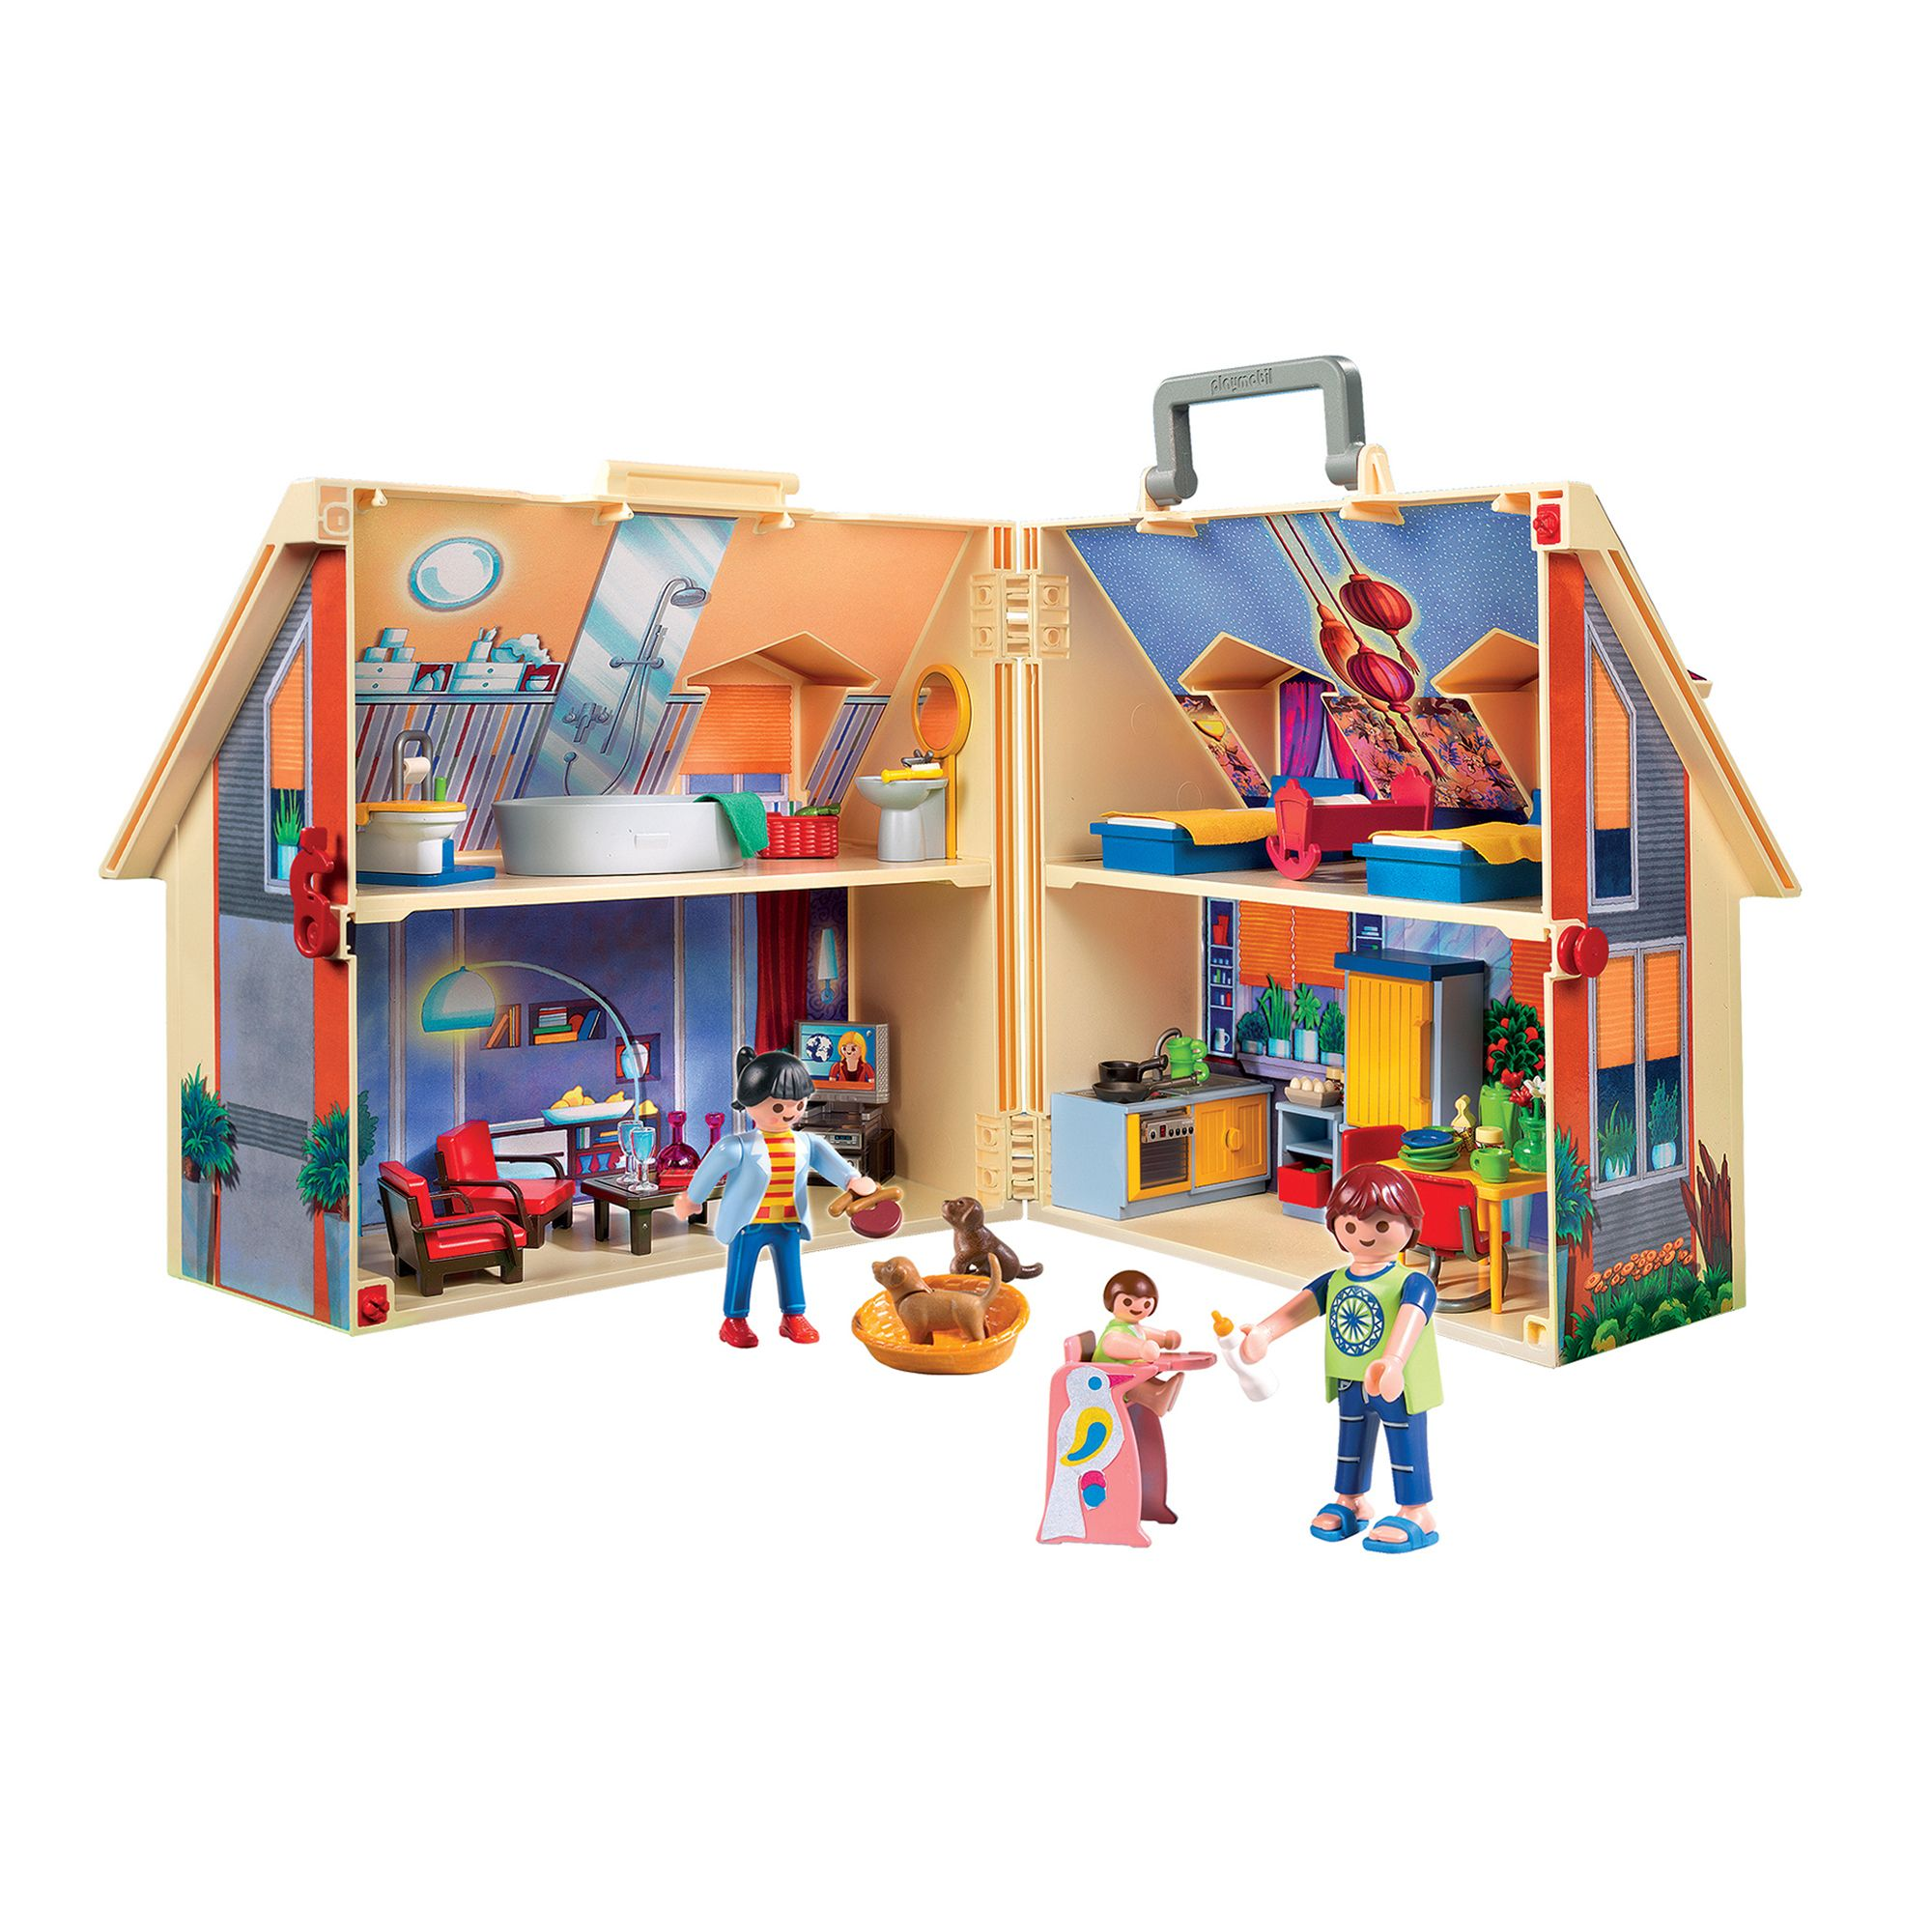 Playmobil Take Along House Playmobil® Take Along Modern